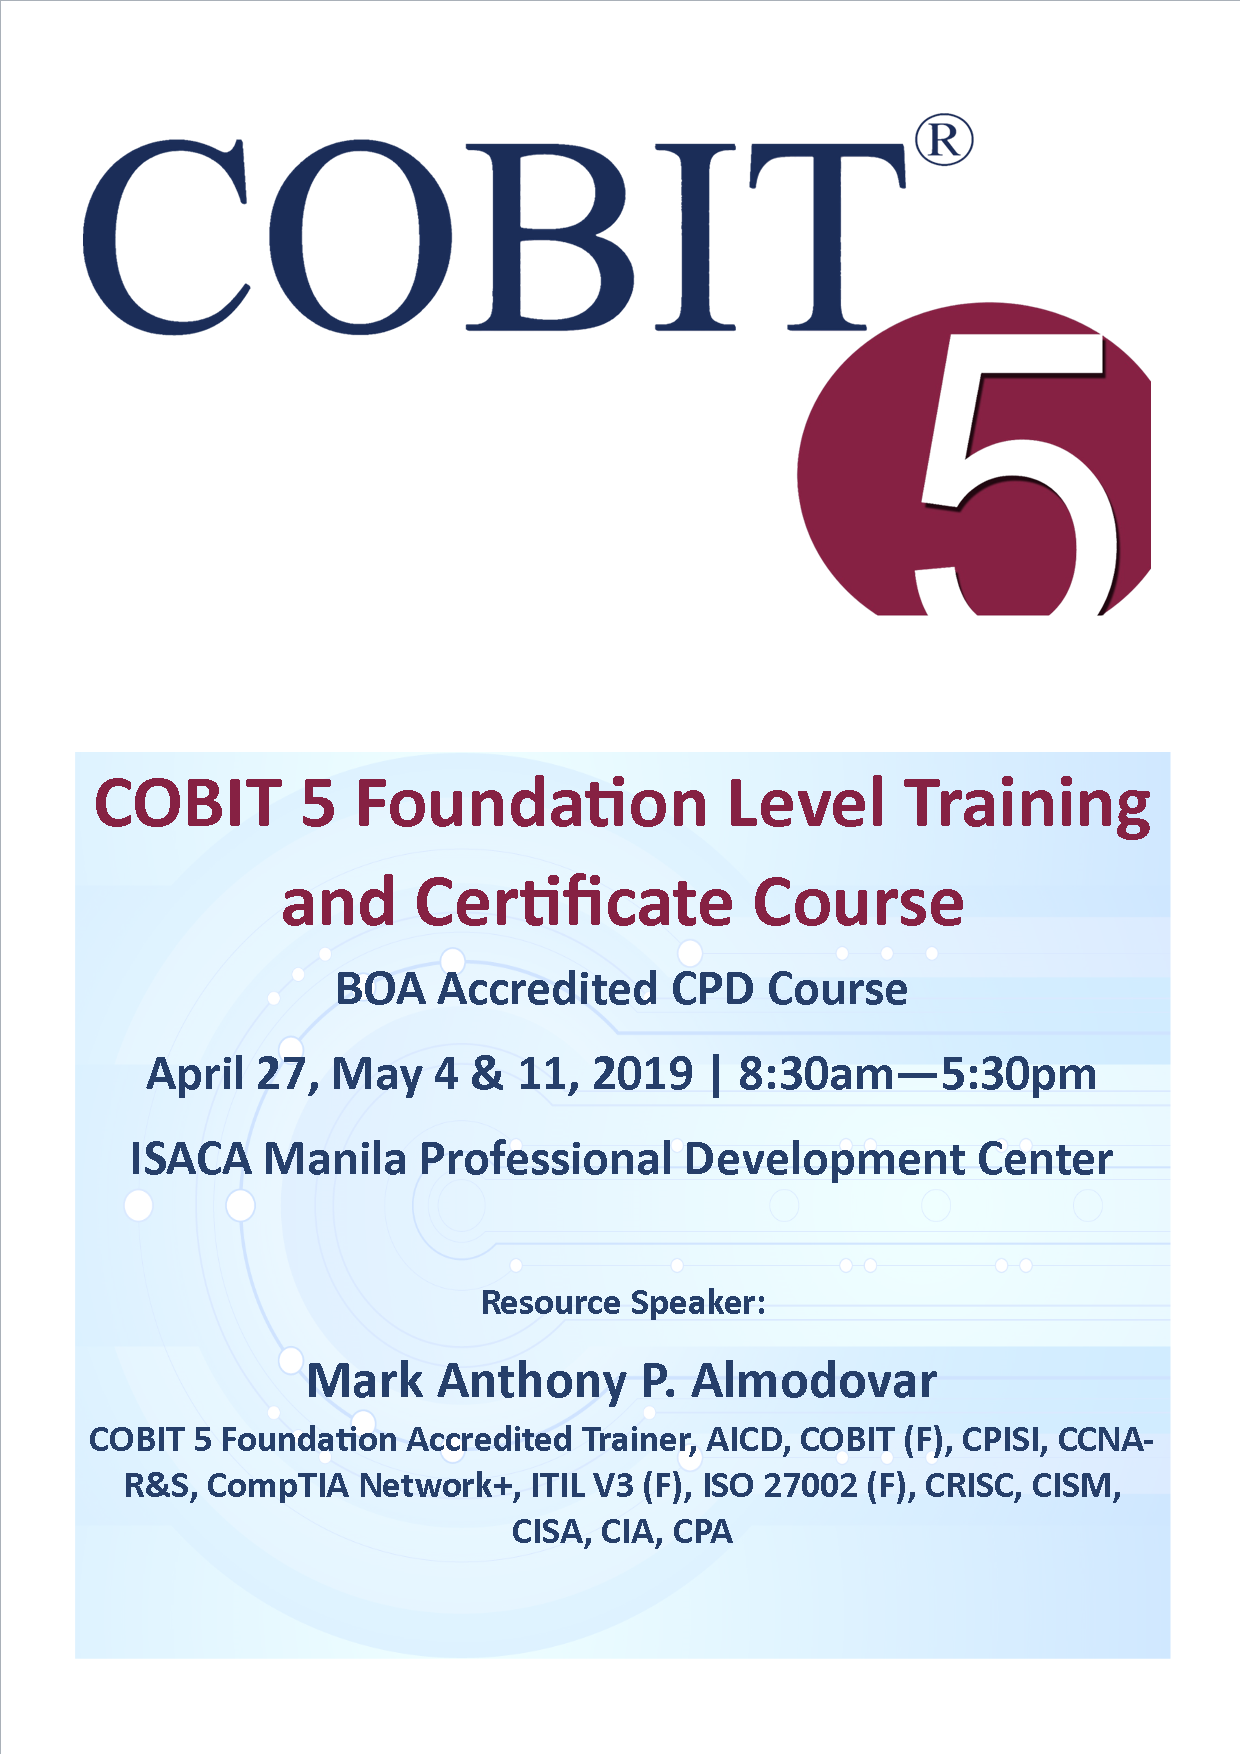 COBIT 5 Foundation Level Training and Certification Course